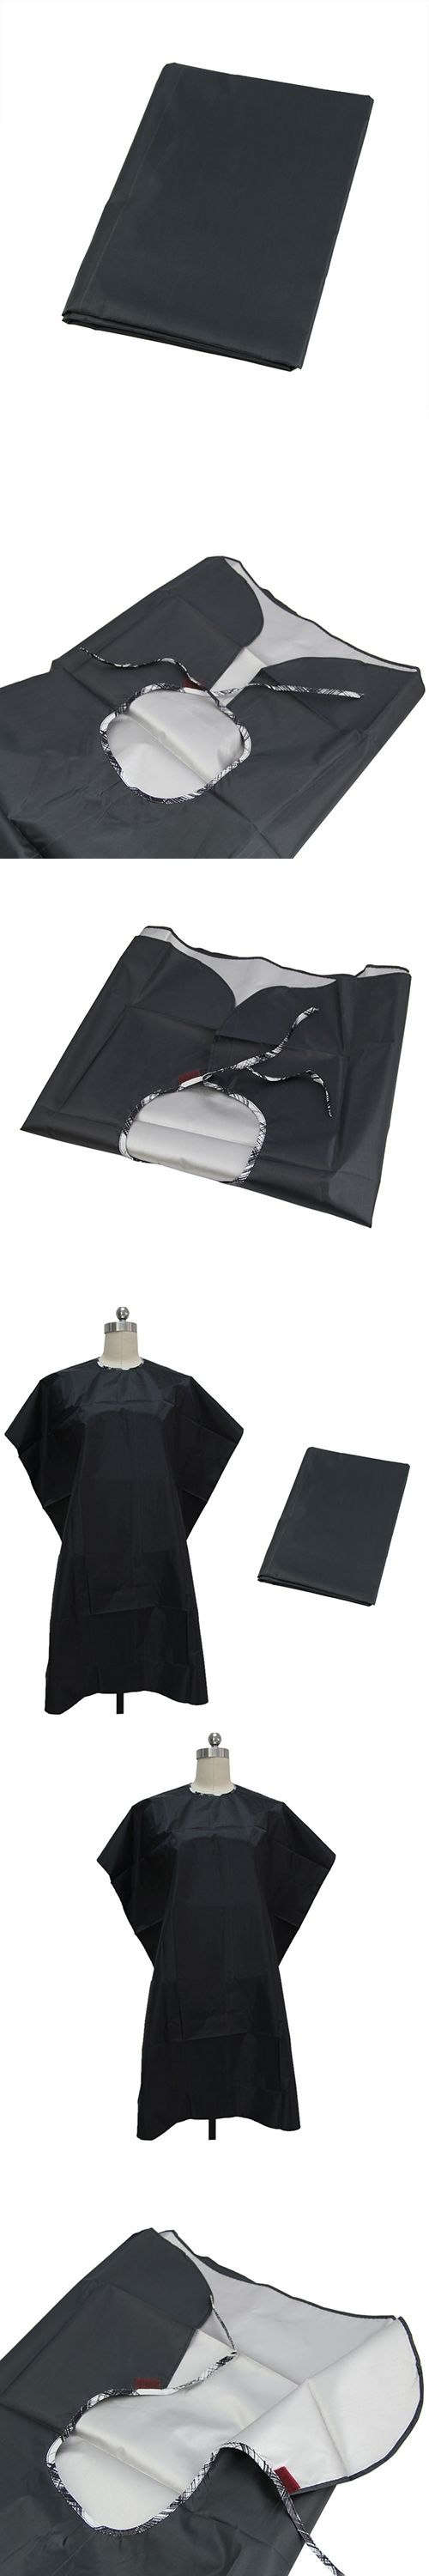 Adult Kid Waterproof Barber Haircut Hairdresser Cape Gown Cloth Salon Apron